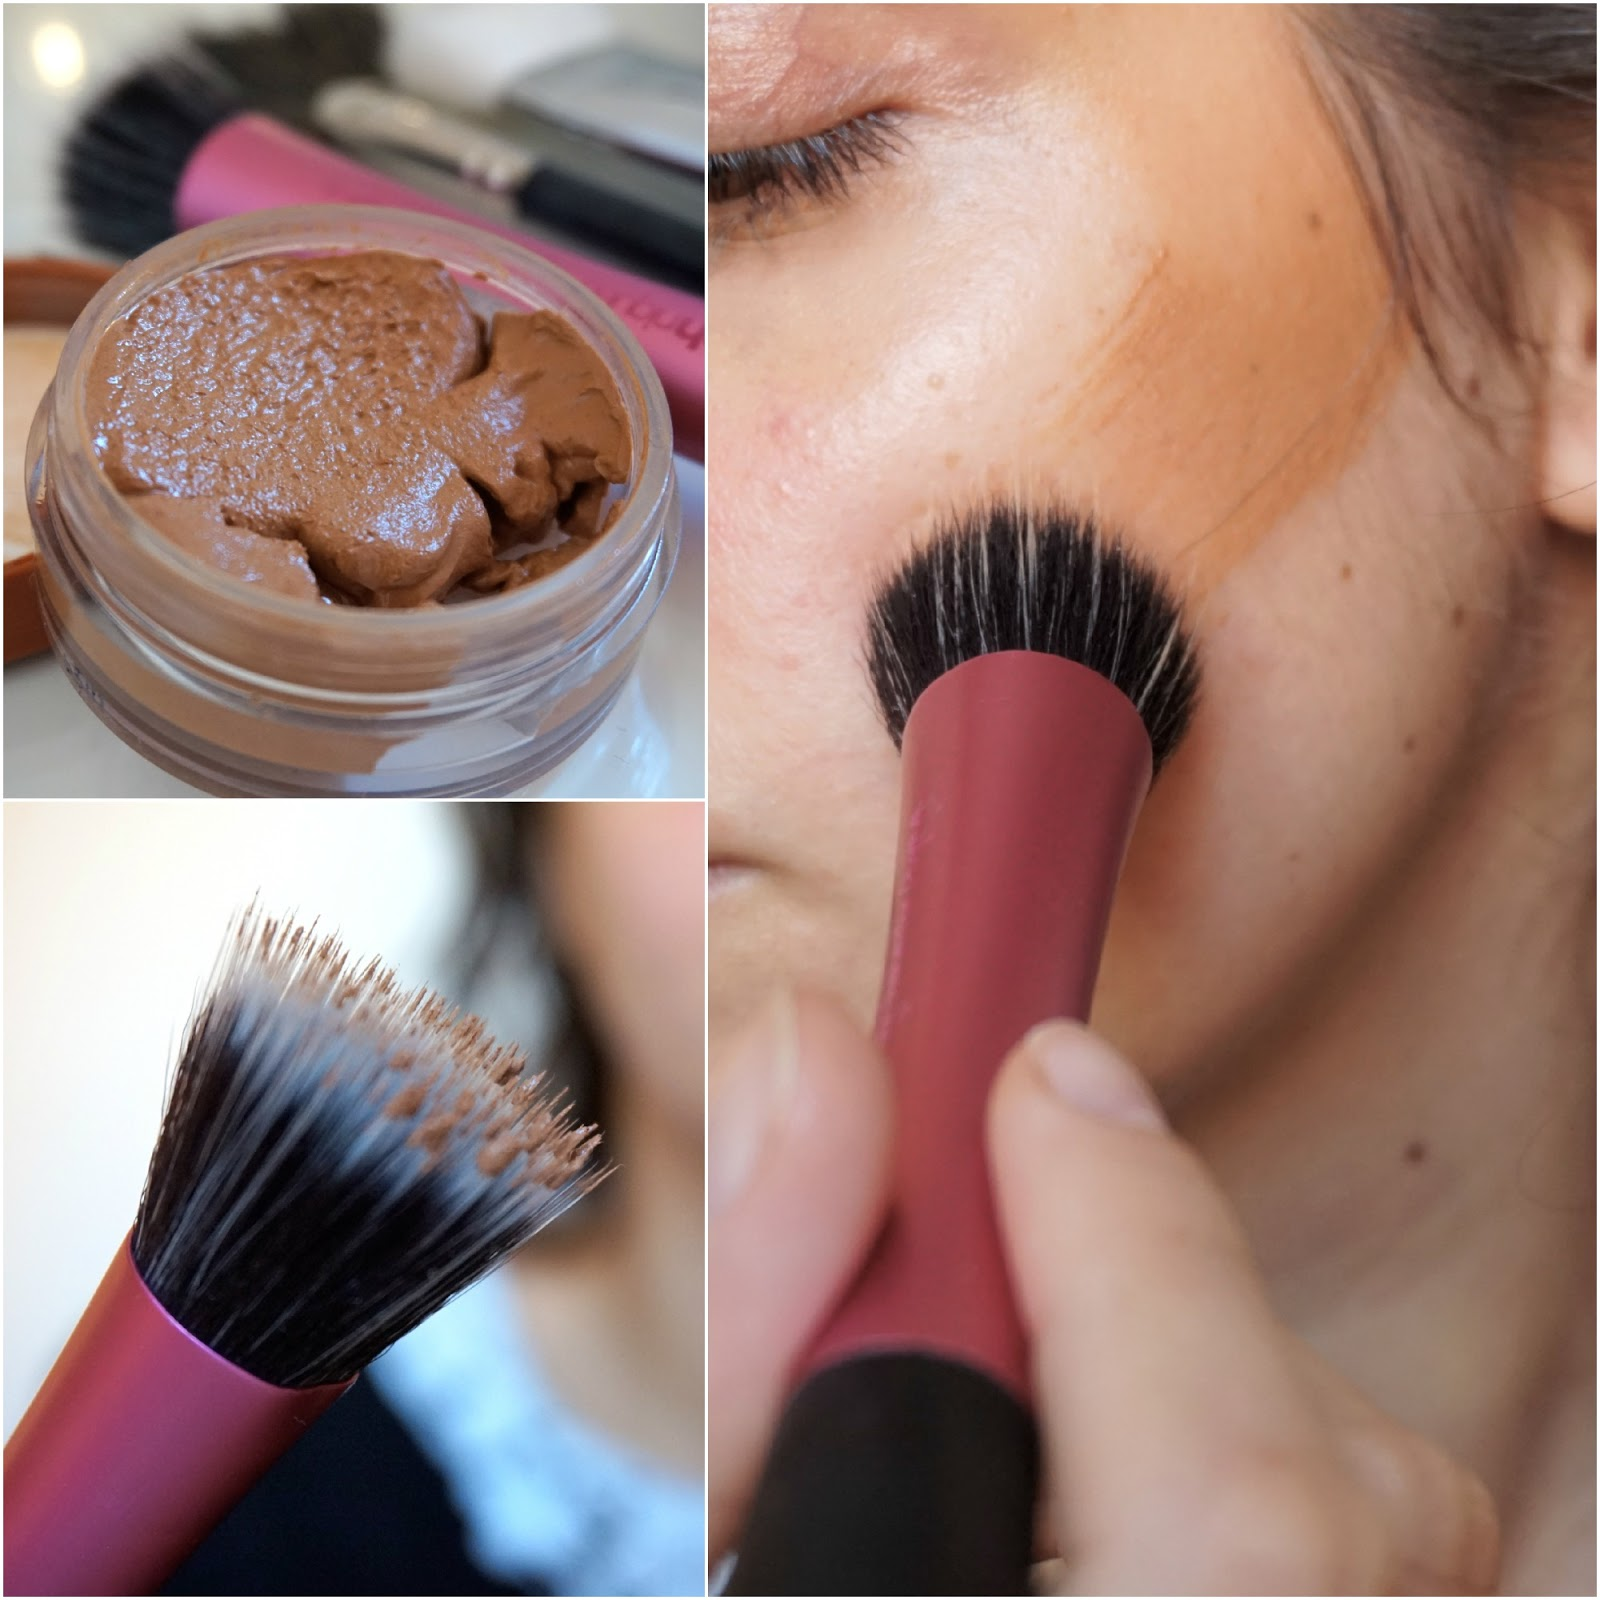 Bourjois Bronzing Primer, Real Techniques Stippling brush